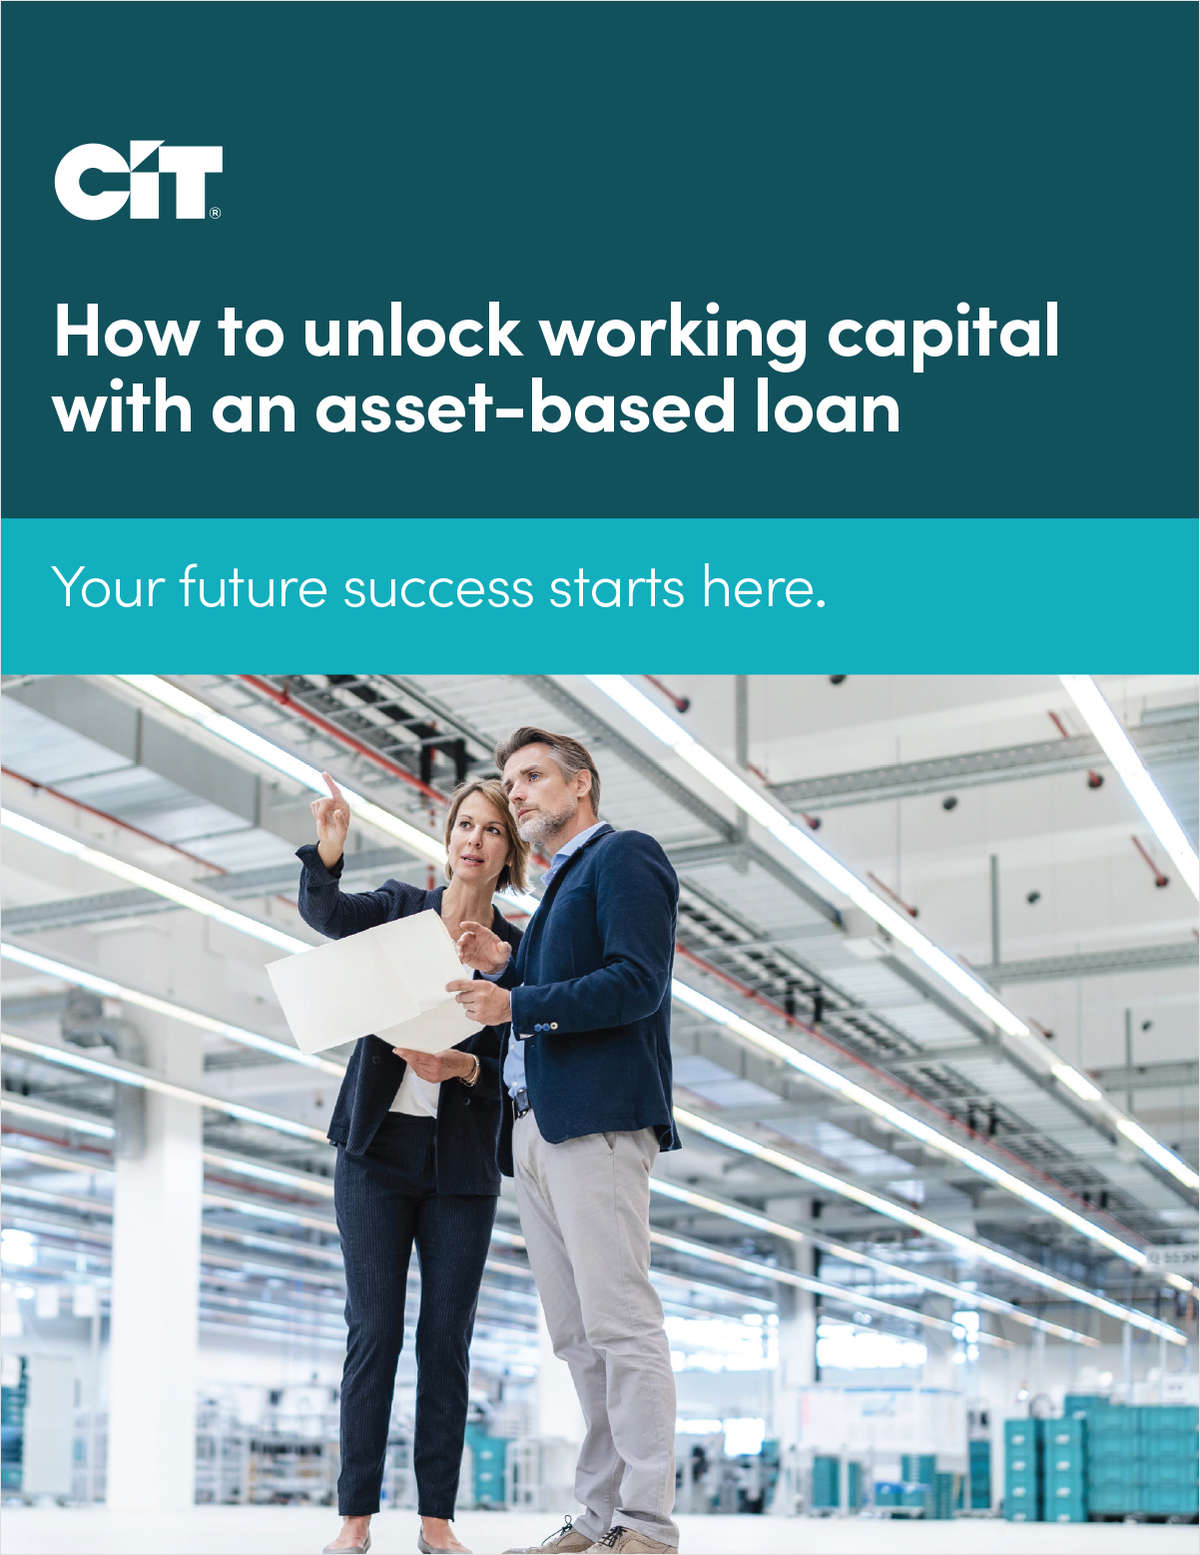 5 Key Questions About Using Your Assets to Unlock Capital and Grow your Business